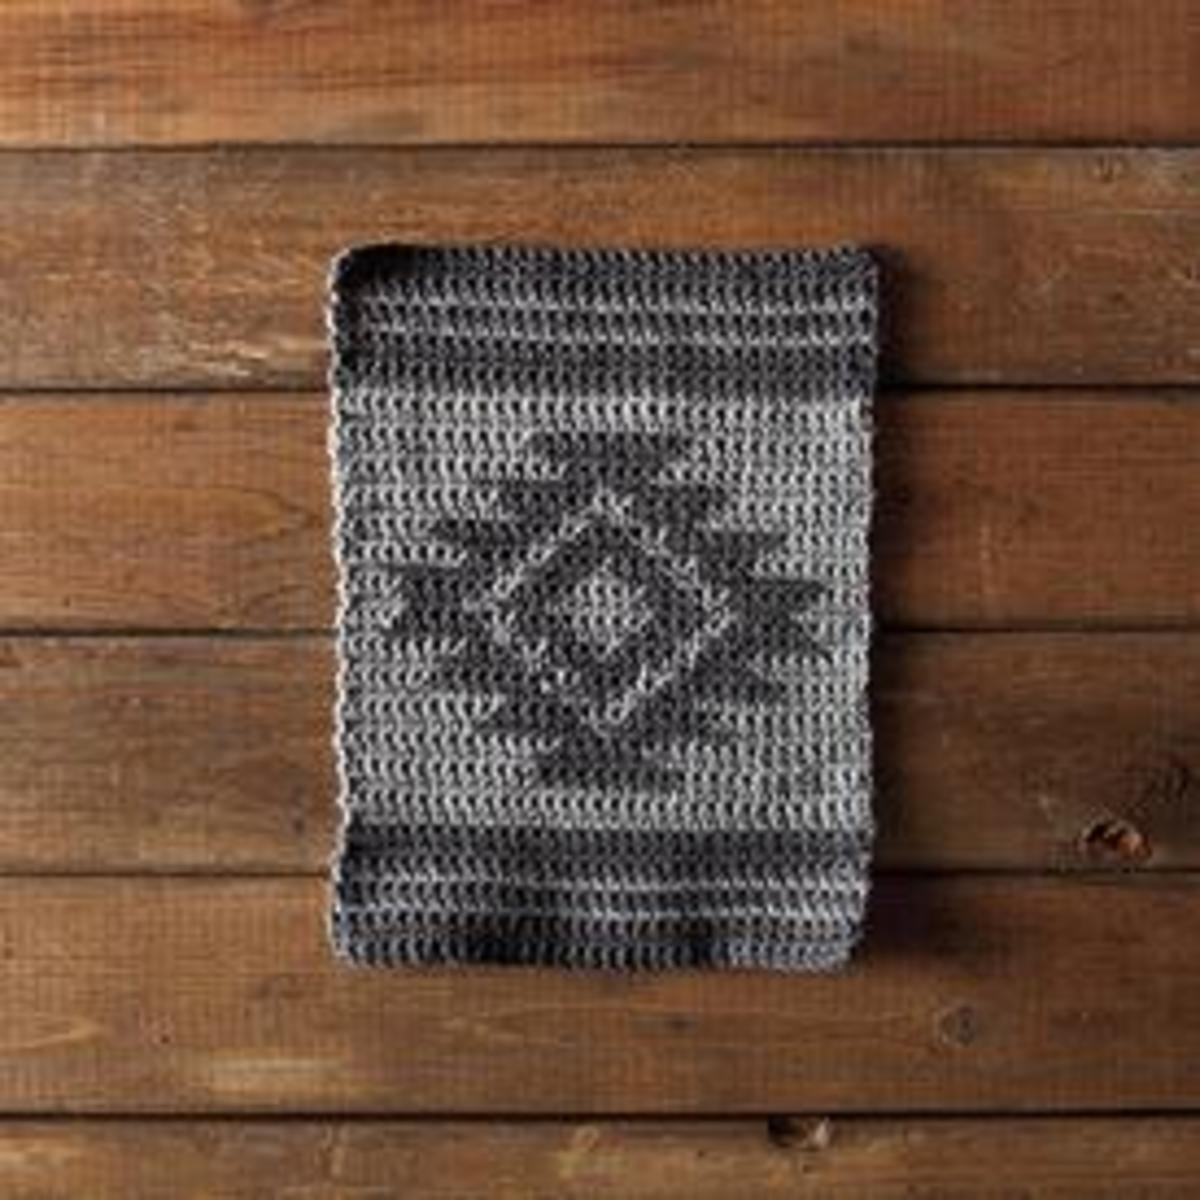 A reversible tapestry crochet ..Free download from : https://www.knitpicks.com/patterns/Aztec_Crochet_Dishcloth__D55816220.html